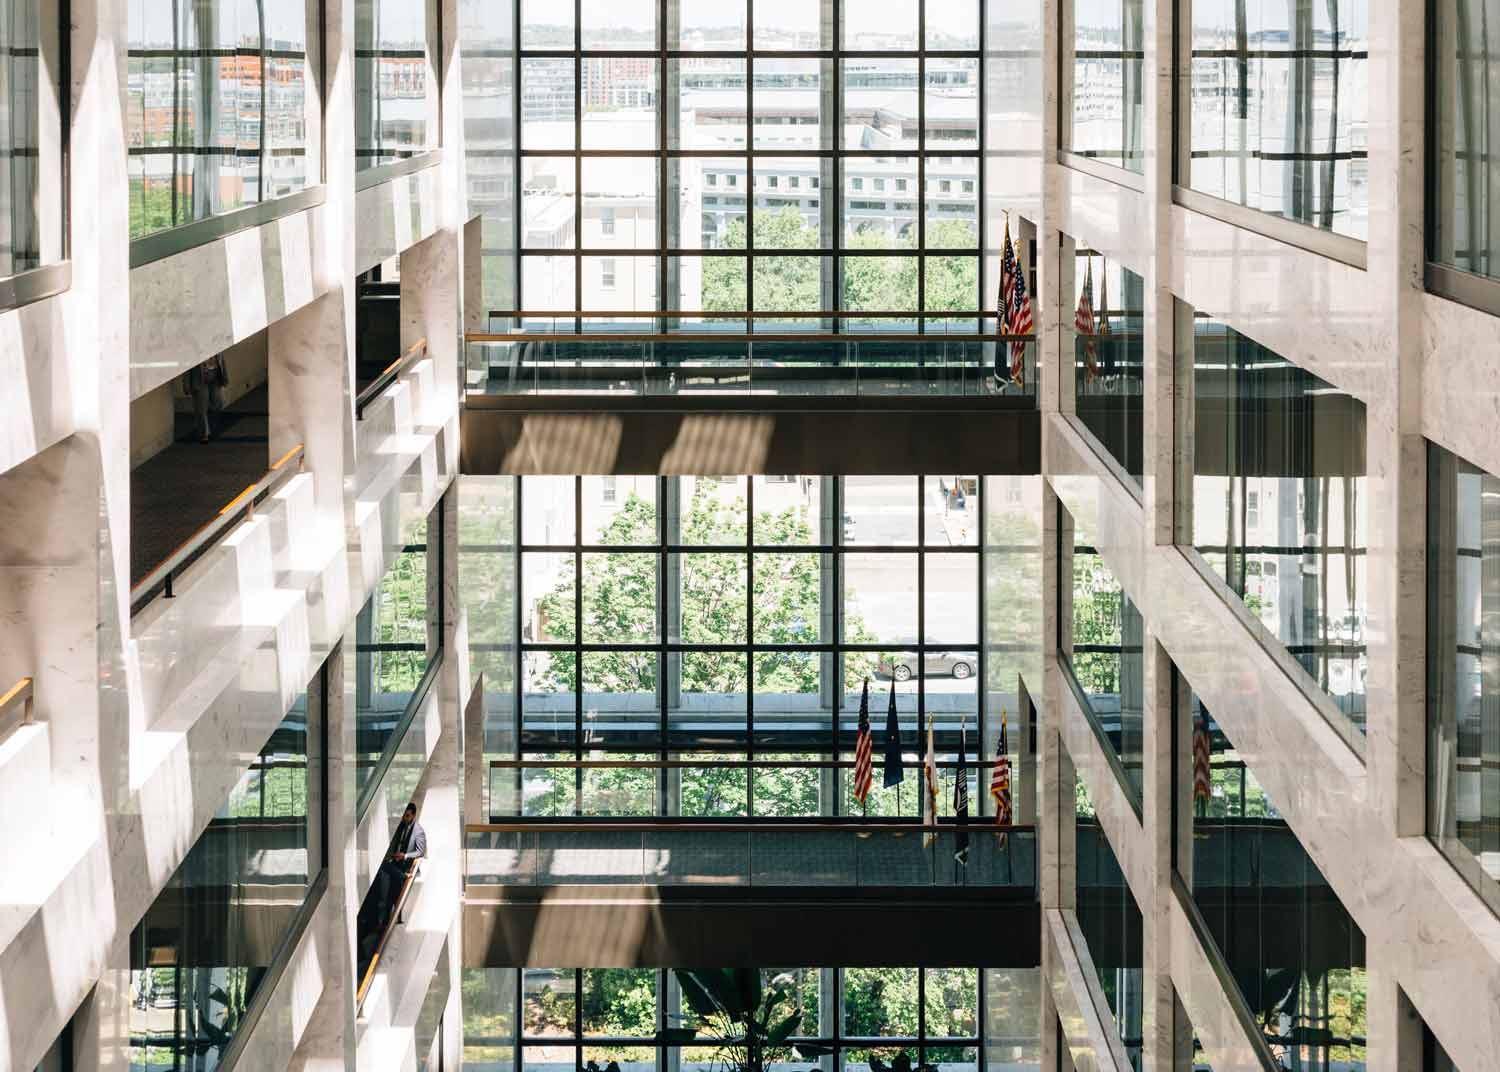 inside a large scale business building with large floor to ceiling windows